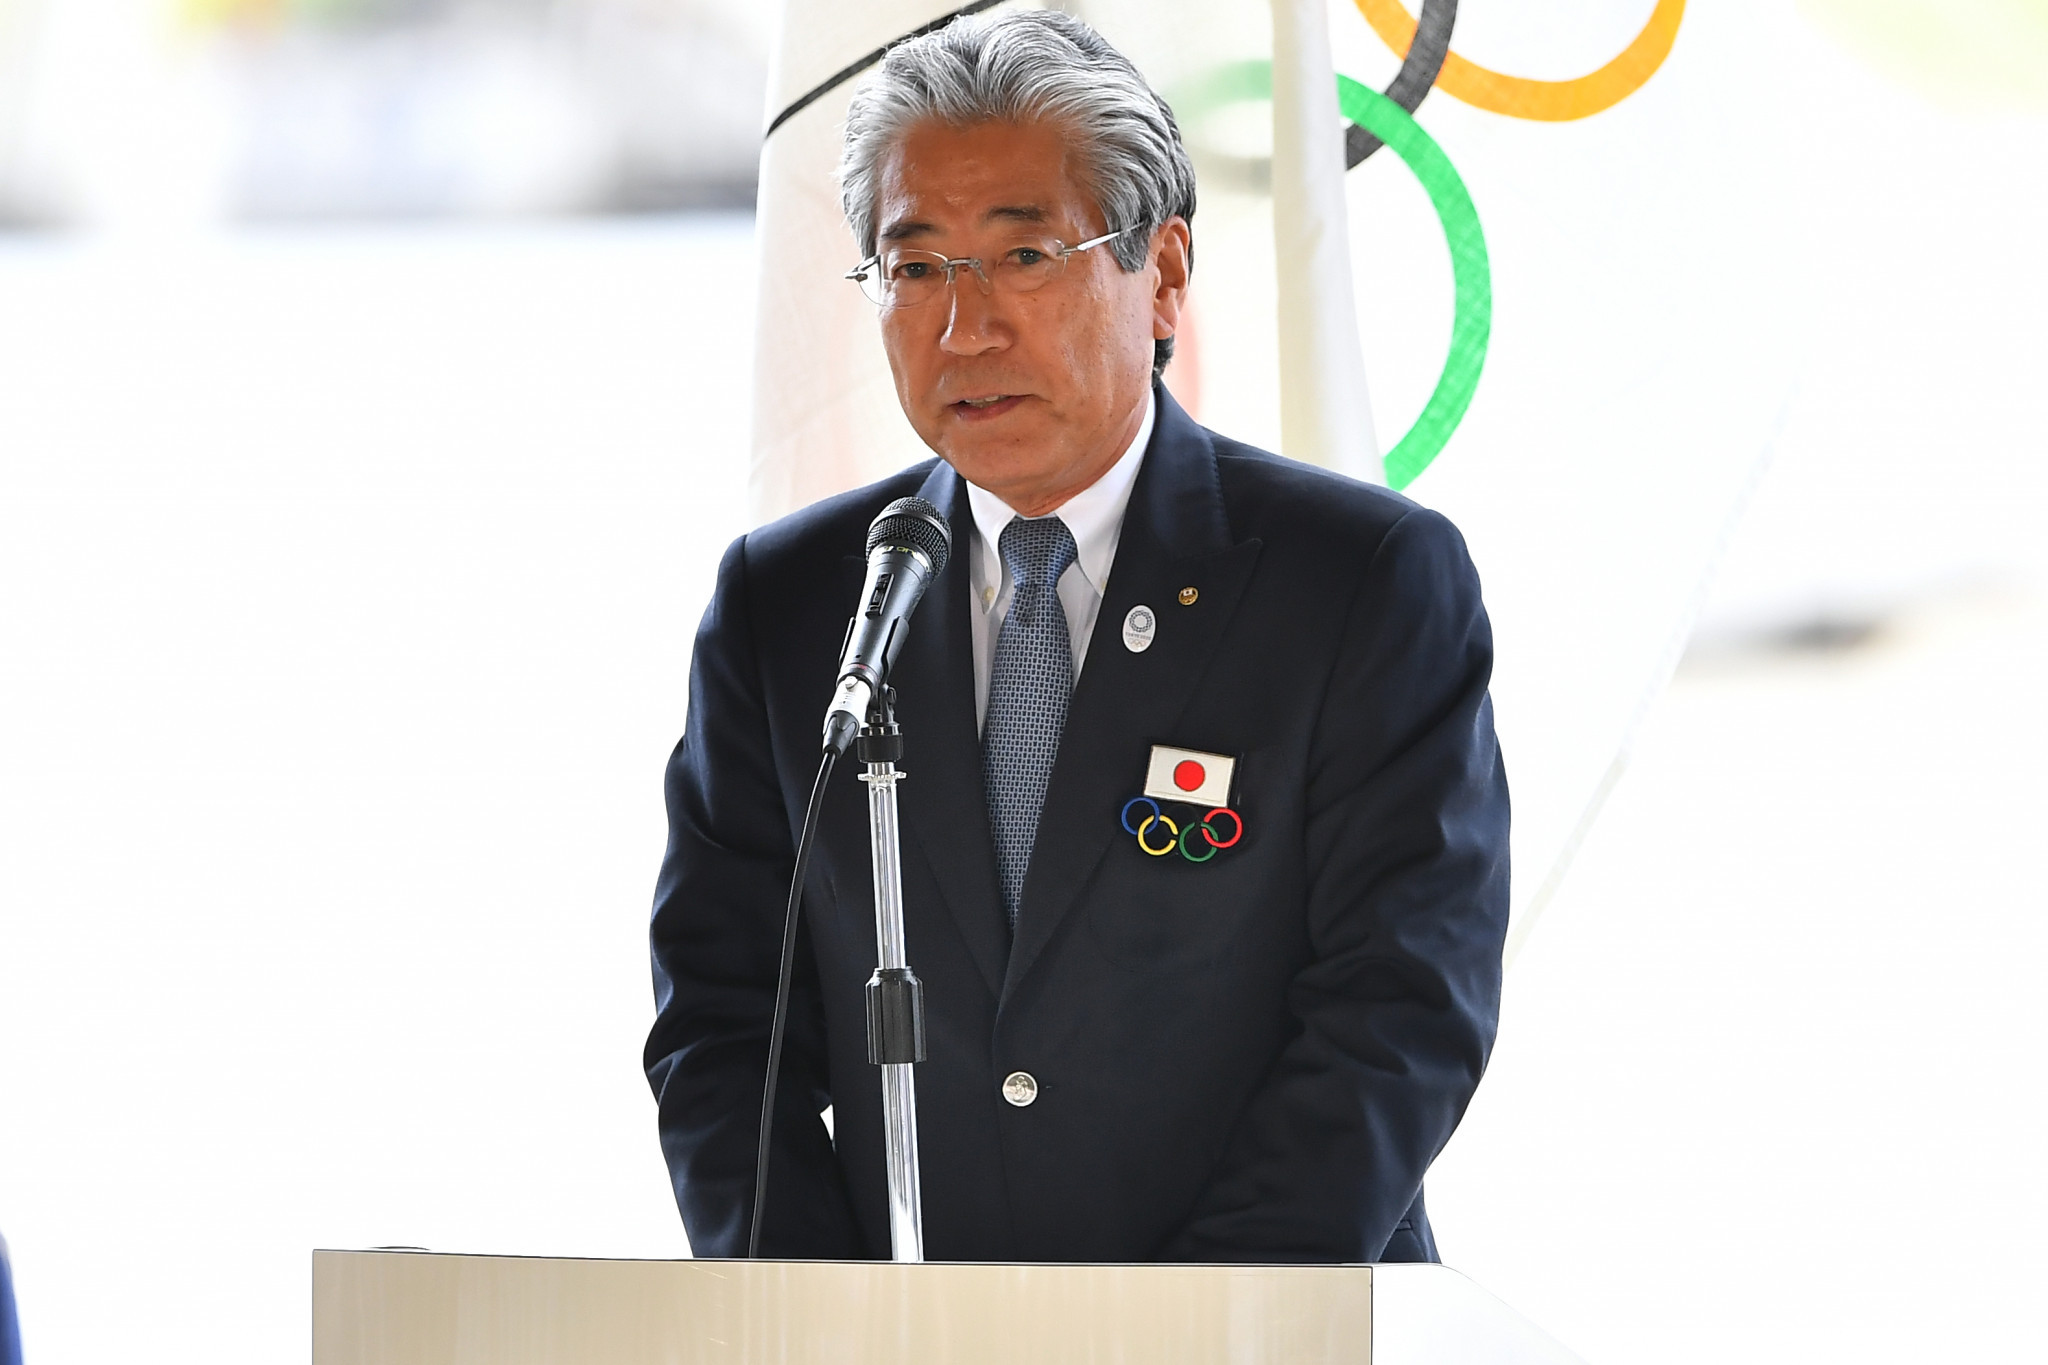 The search is on for a Japanese replacement for Tsunekazu Takeda, who has stepped down as a member of the IOC following corruption allegations ©Getty Images